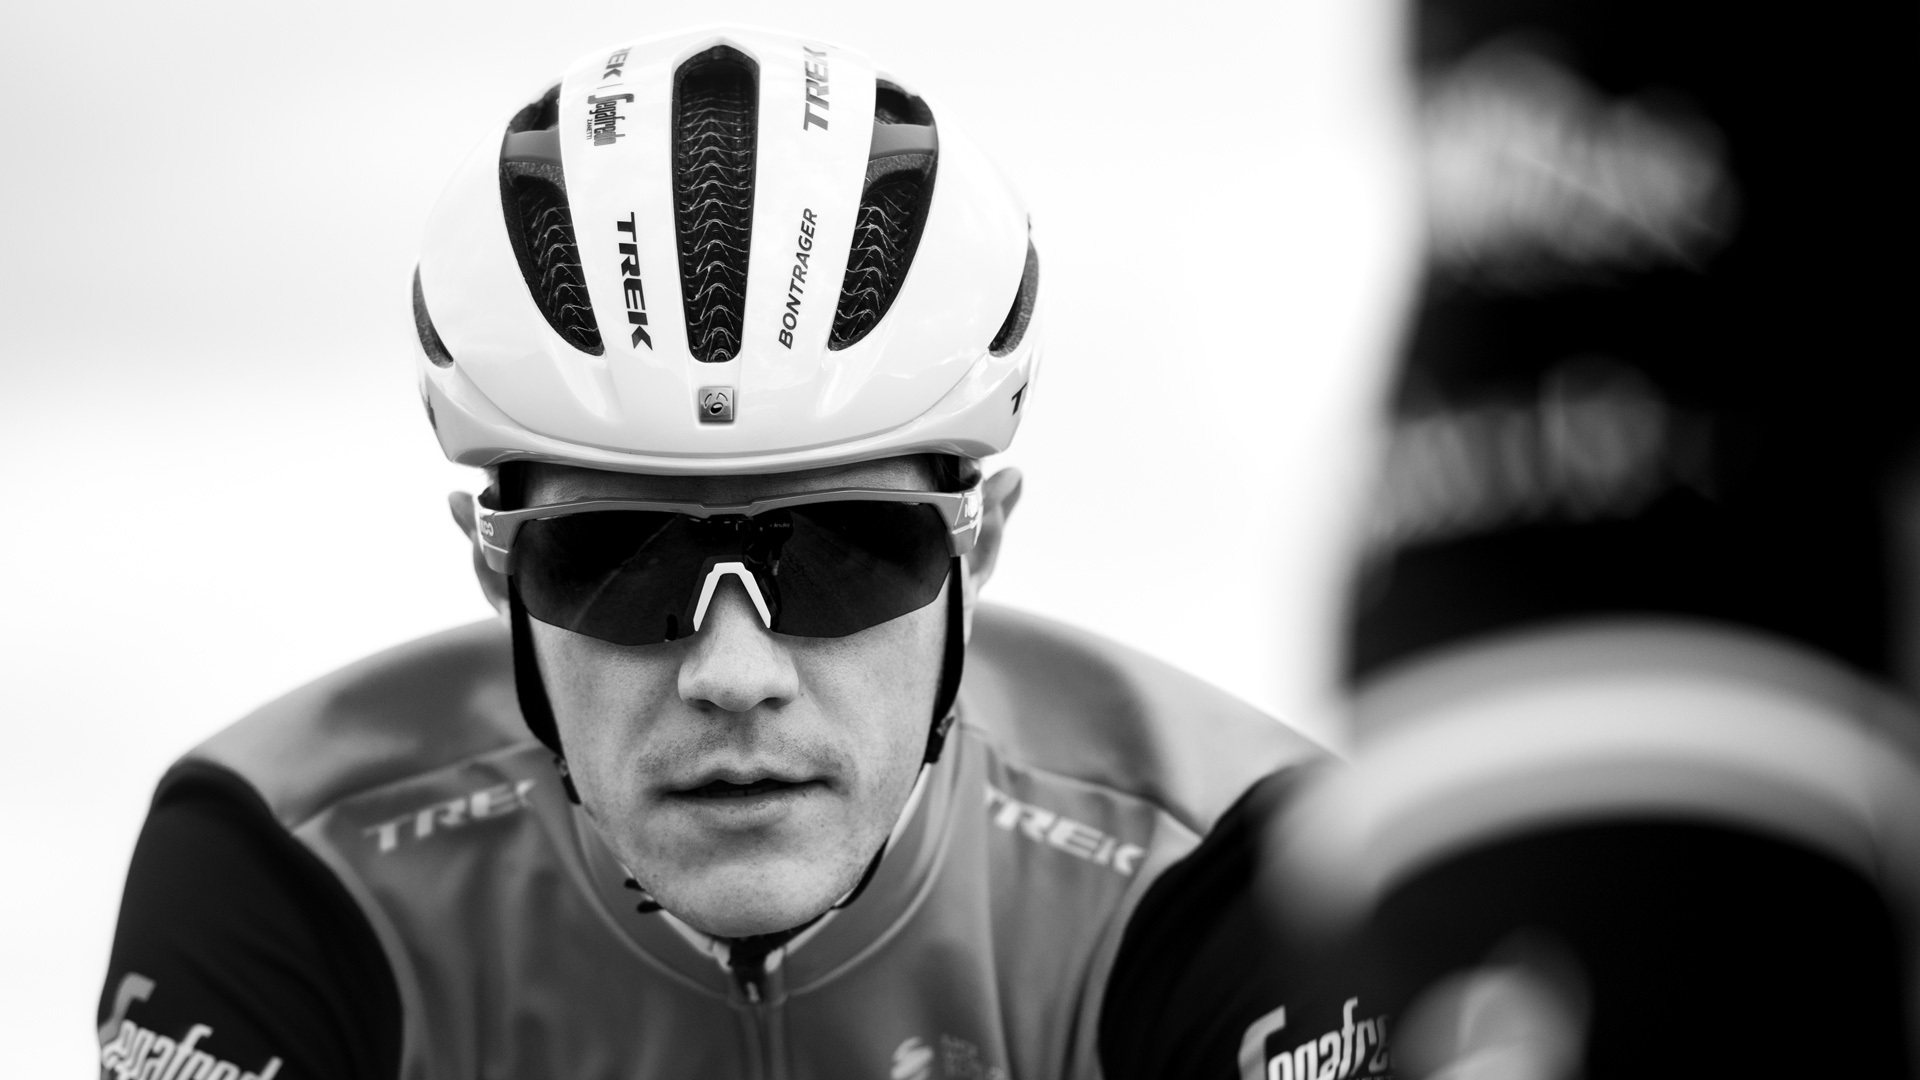 The Revolutionary Cycling Helmet Technology More Than 15 Years in the Making